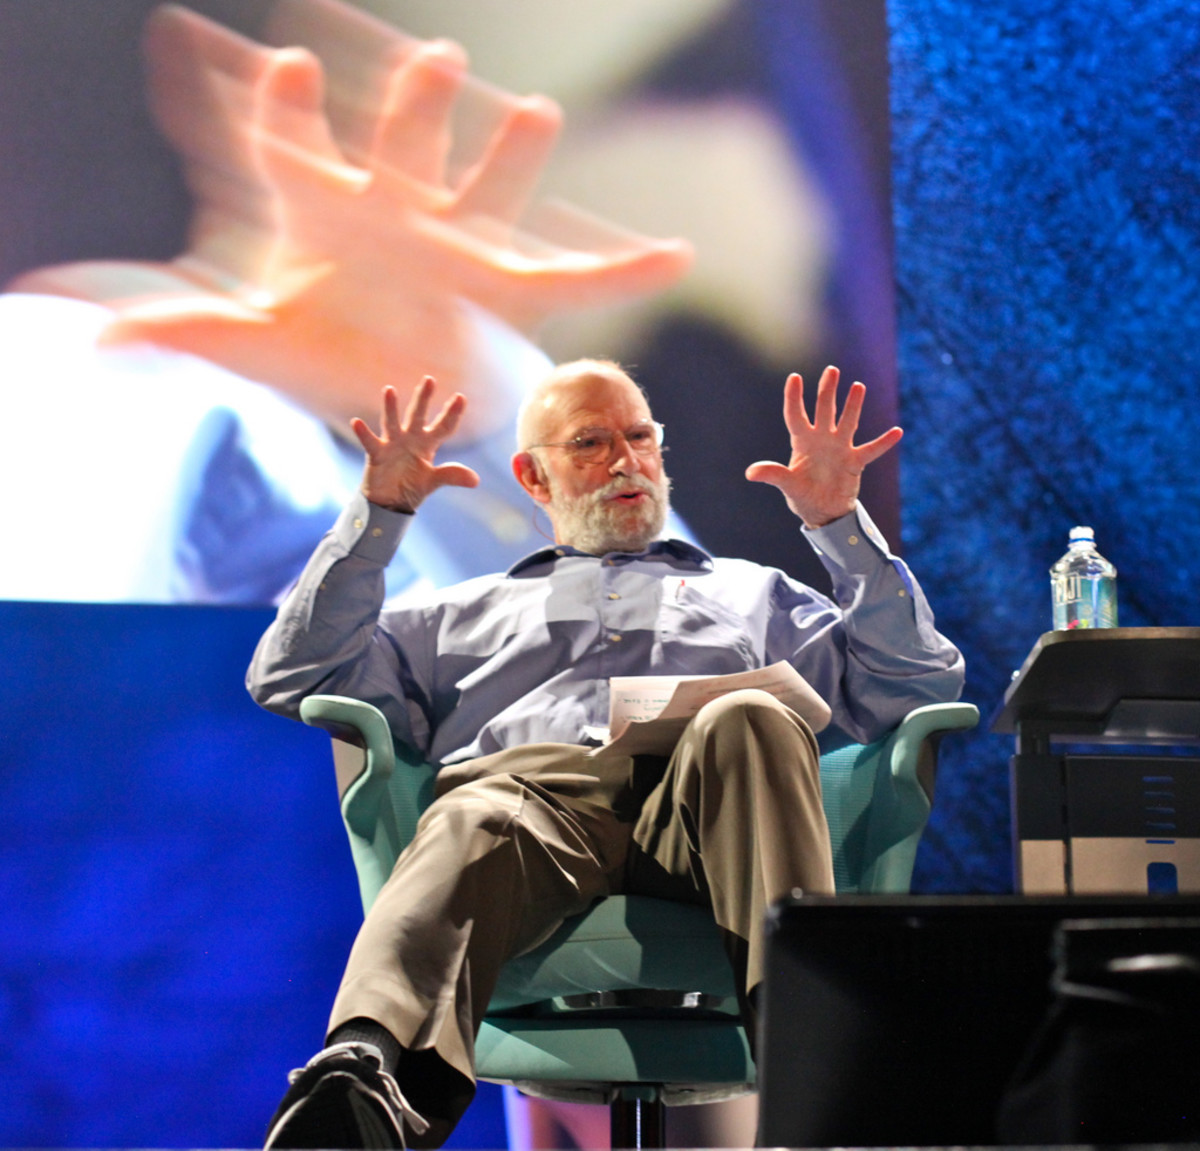 Oliver Sacks in 2009. (Photo: Steve Jurvetson/Flickr)